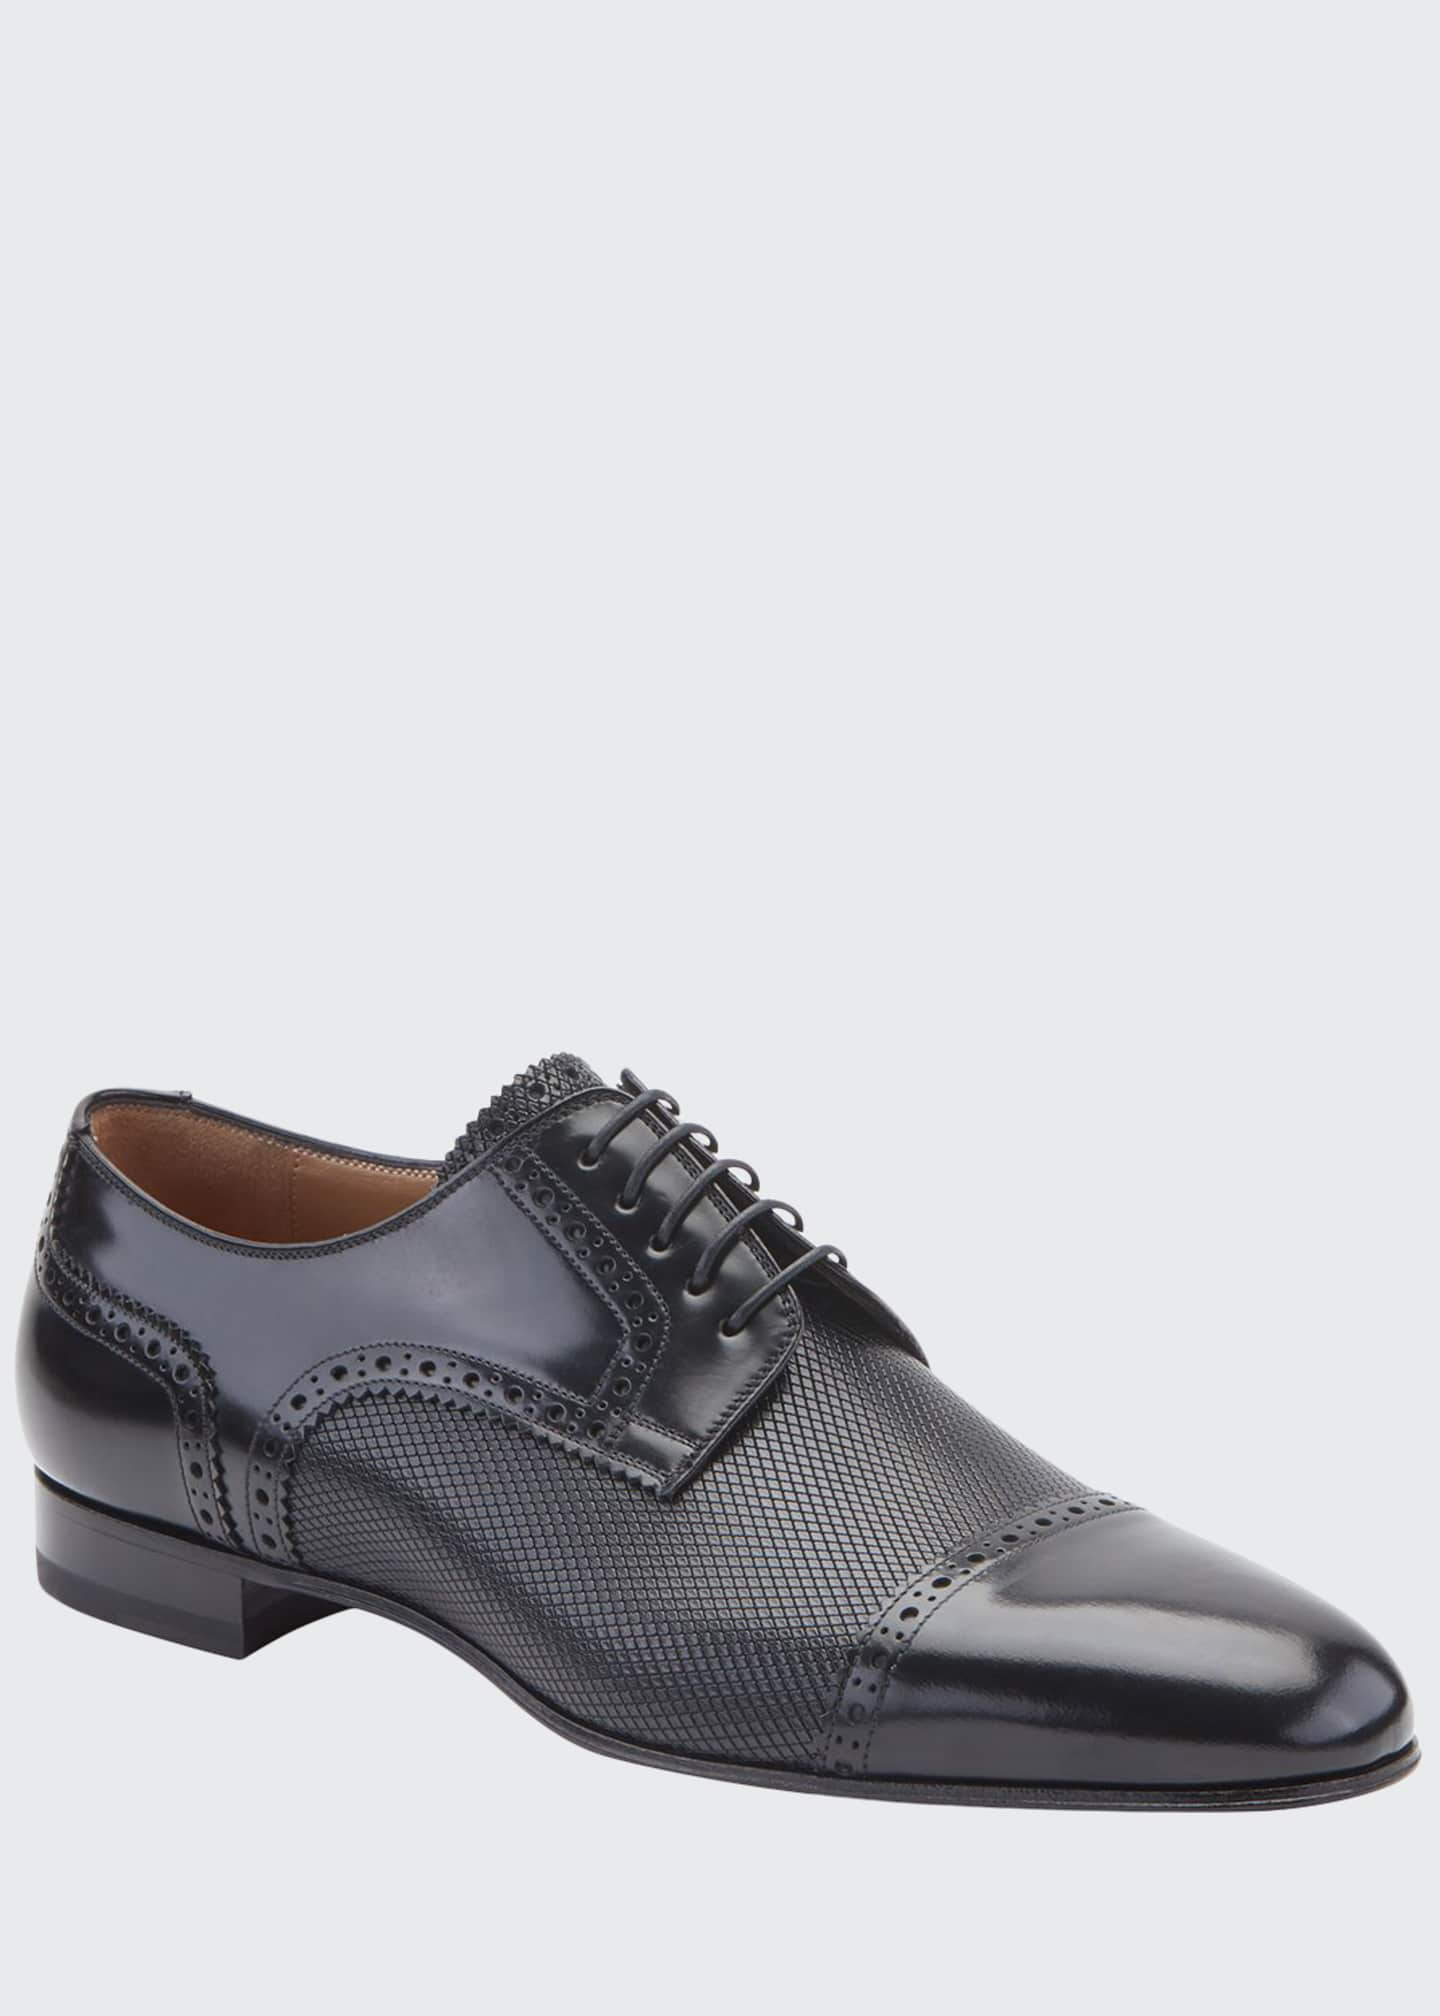 Christian Louboutin Men's Eygeny Brogue Paneled Leather Derby